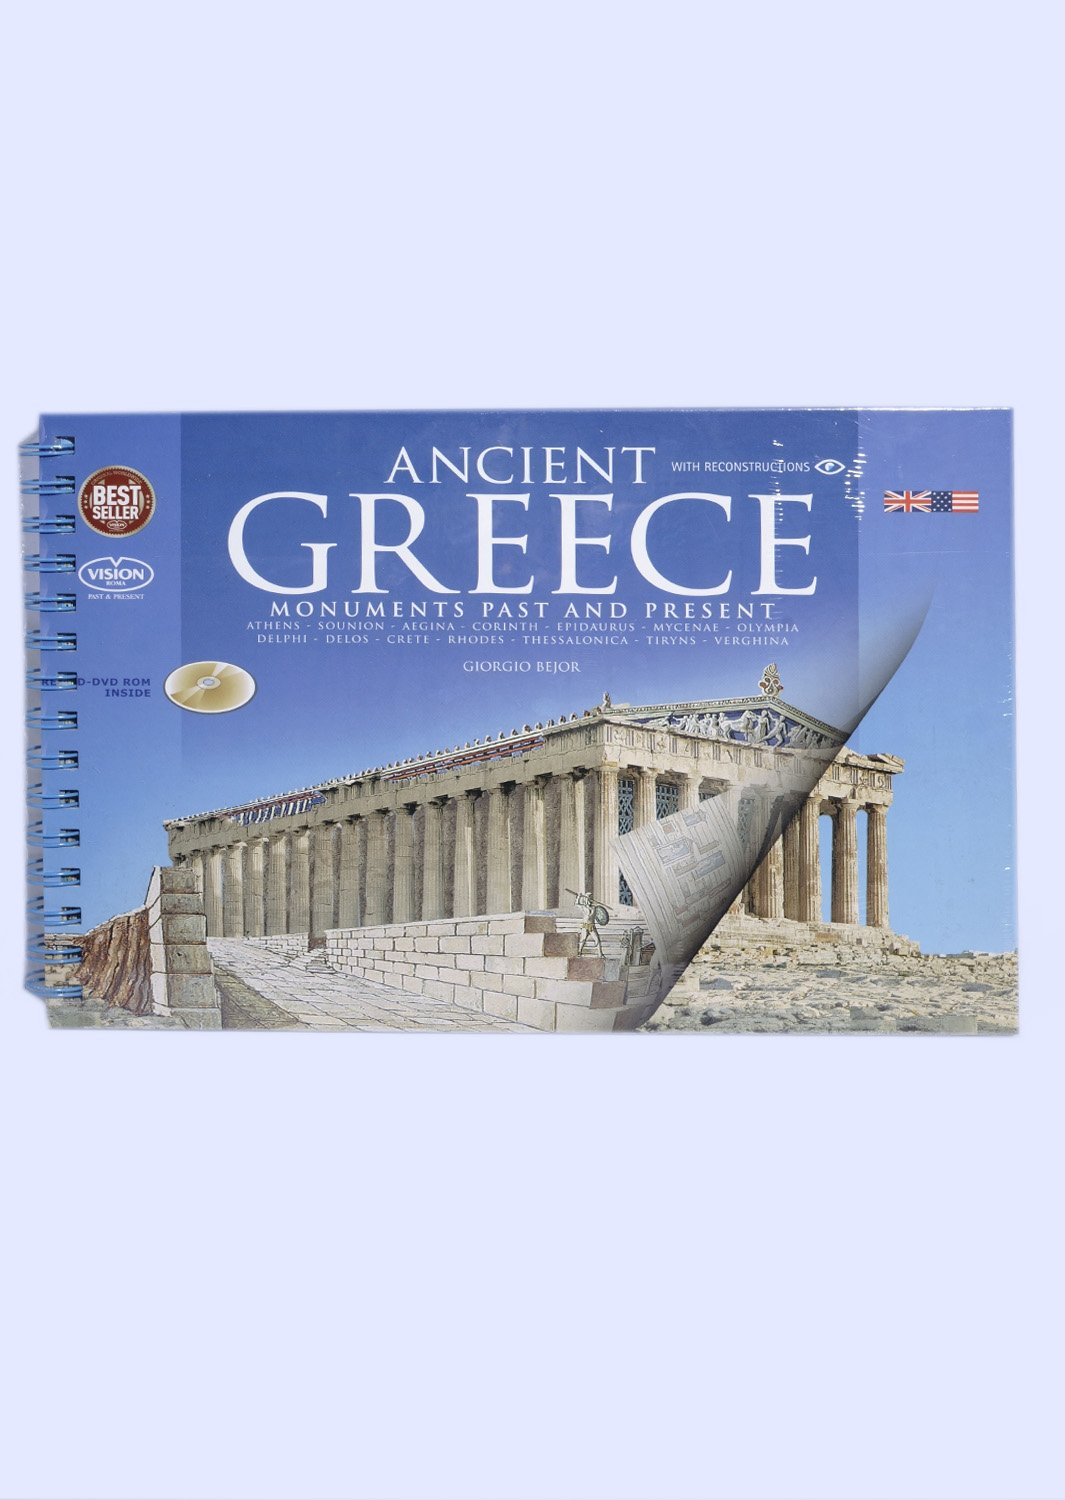 Past and present of ancient Greece book